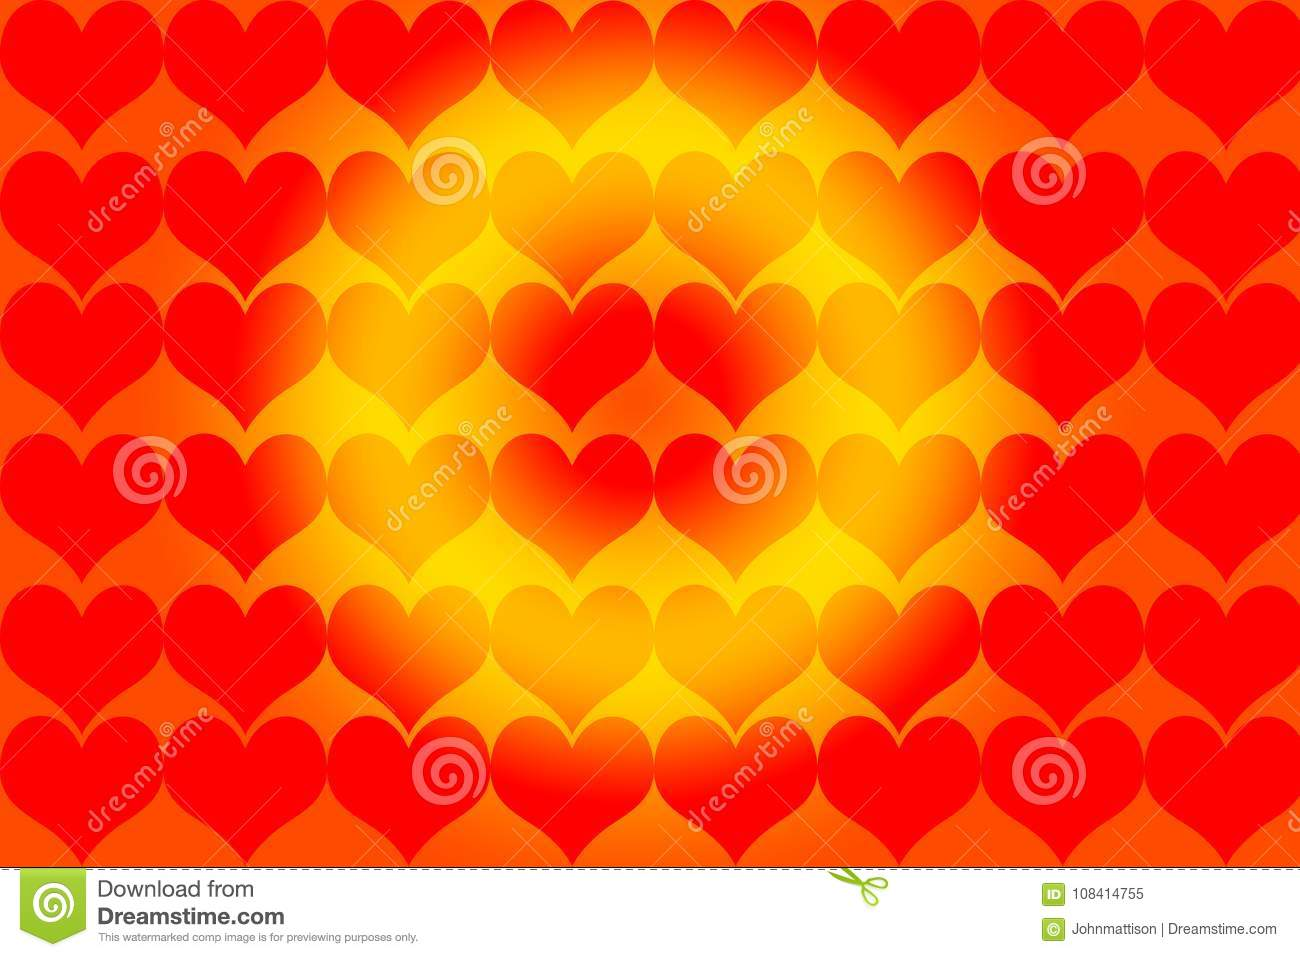 Happy Heart Valentine Day Sunshine Stock Illustration - Illustration